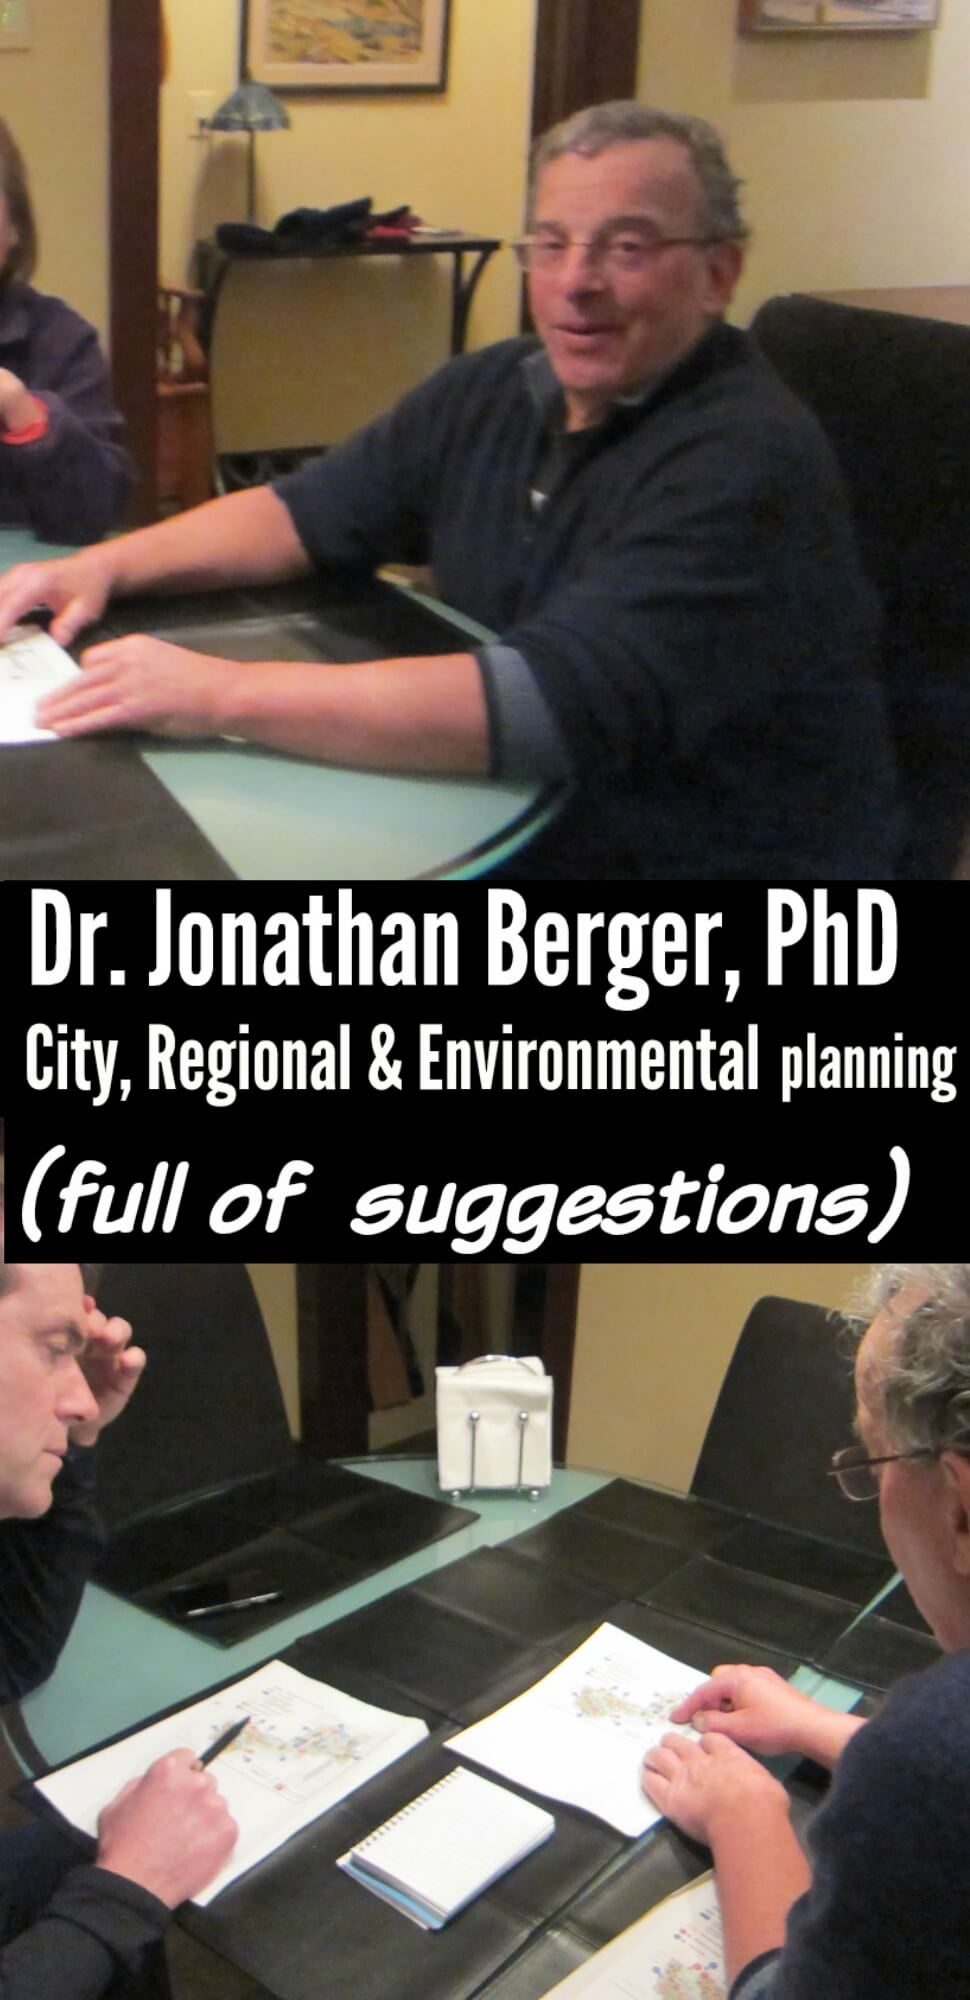 East Falls Local Dr Berger full of suggestions